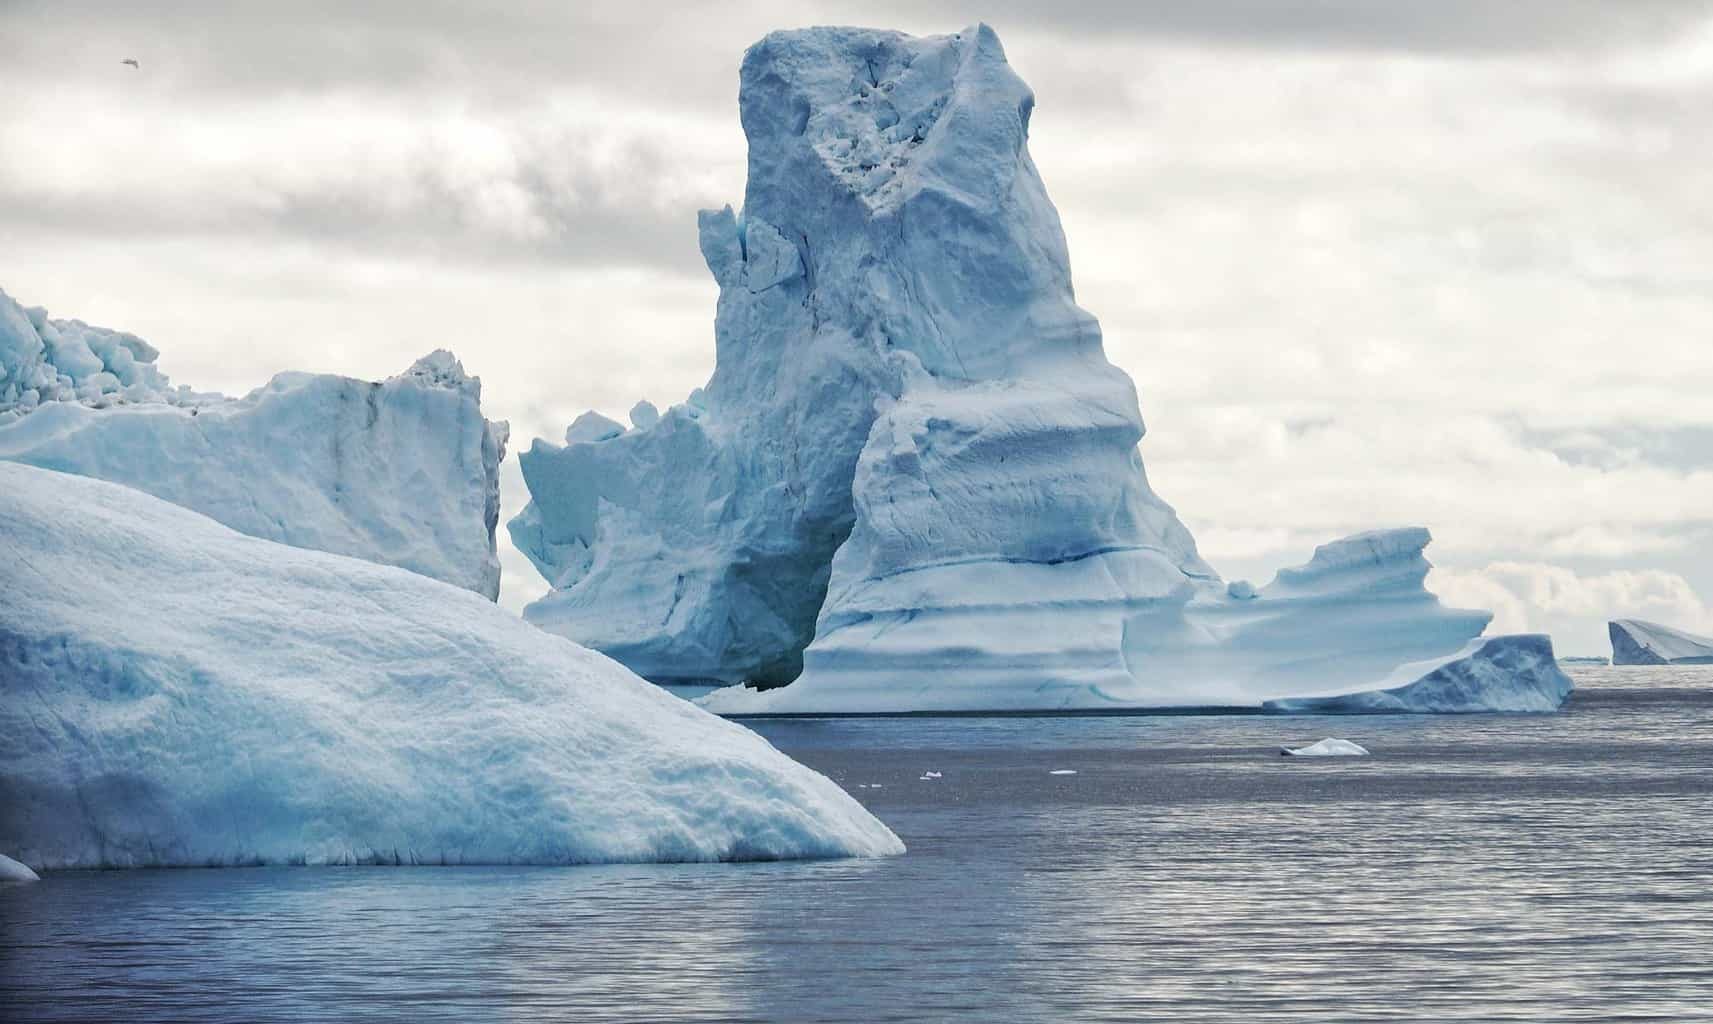 One of the many thousands of icebergs floating around the waters outside of Greenland